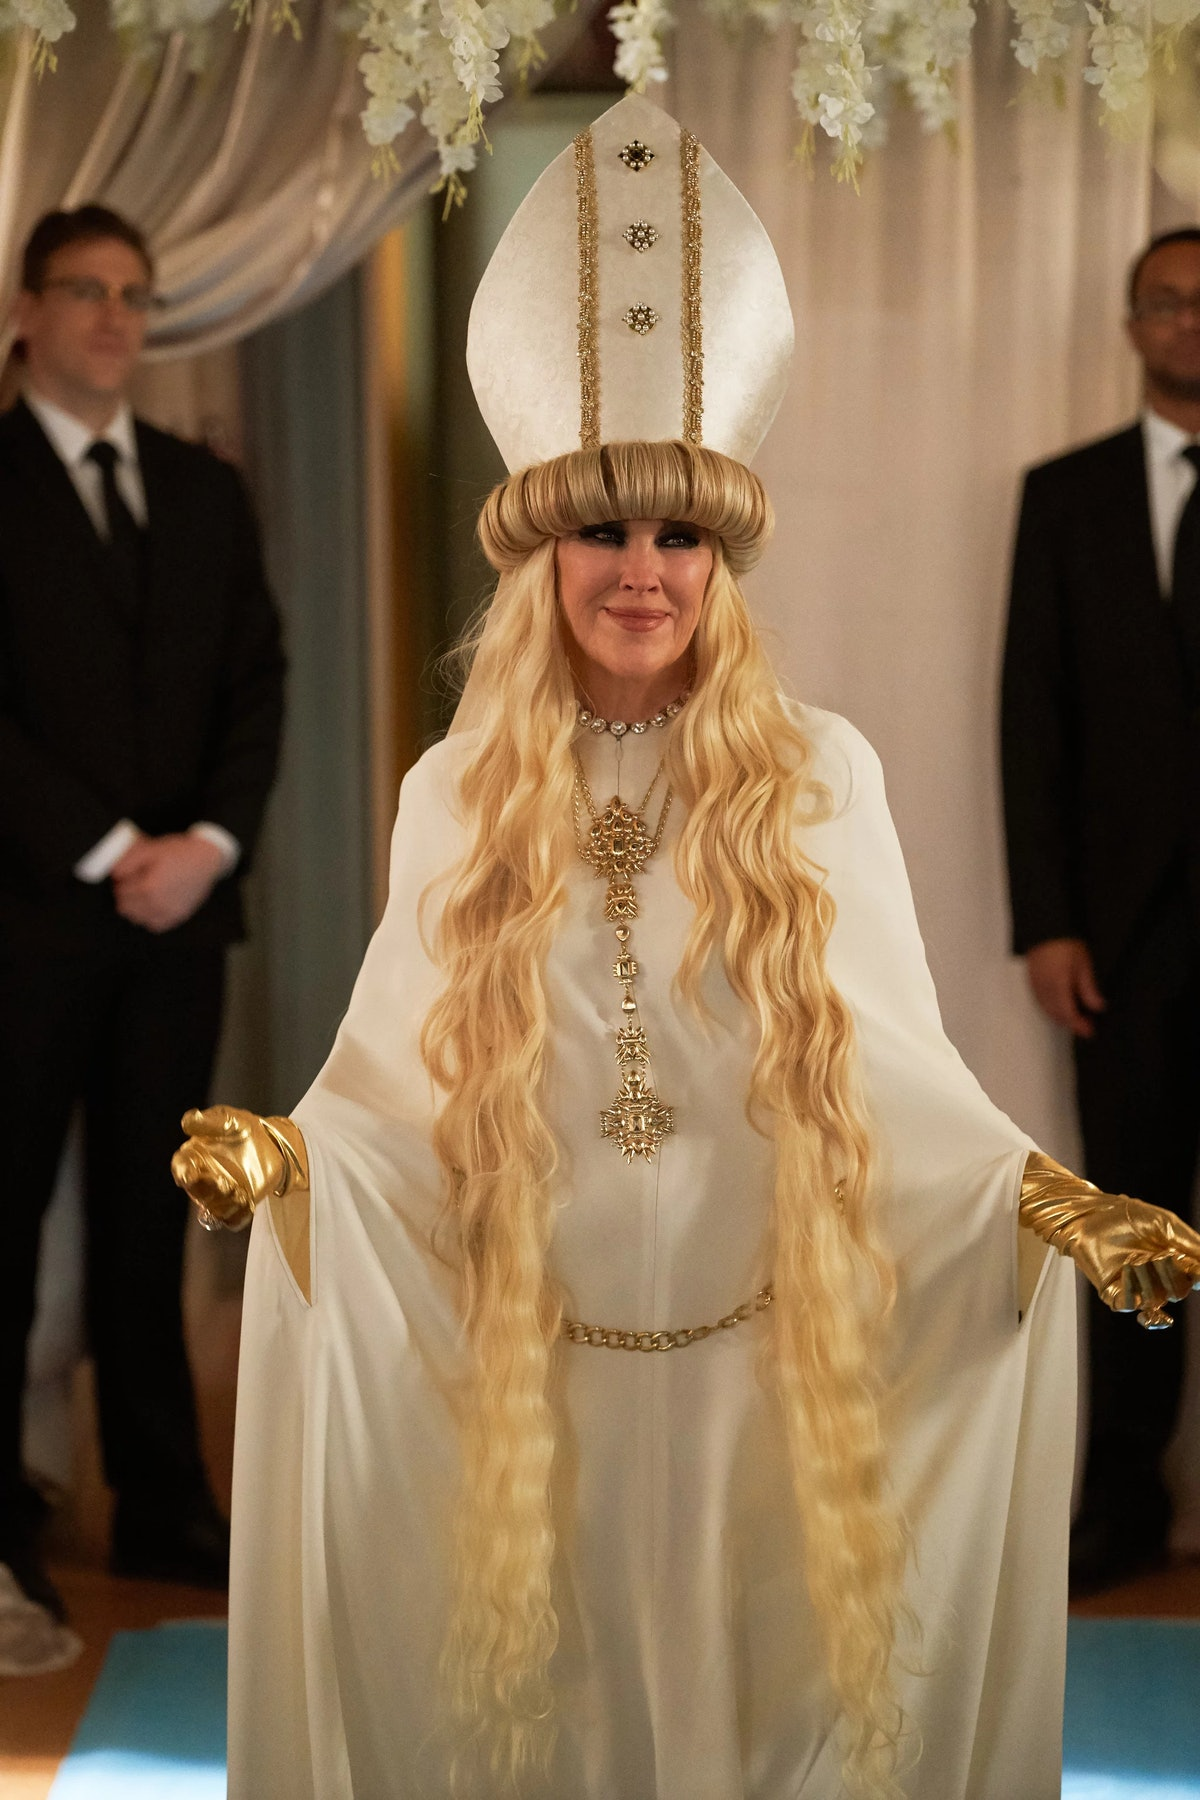 Moira's look for David and Patrick's wedding on 'Schitt's Creek' is iconic.